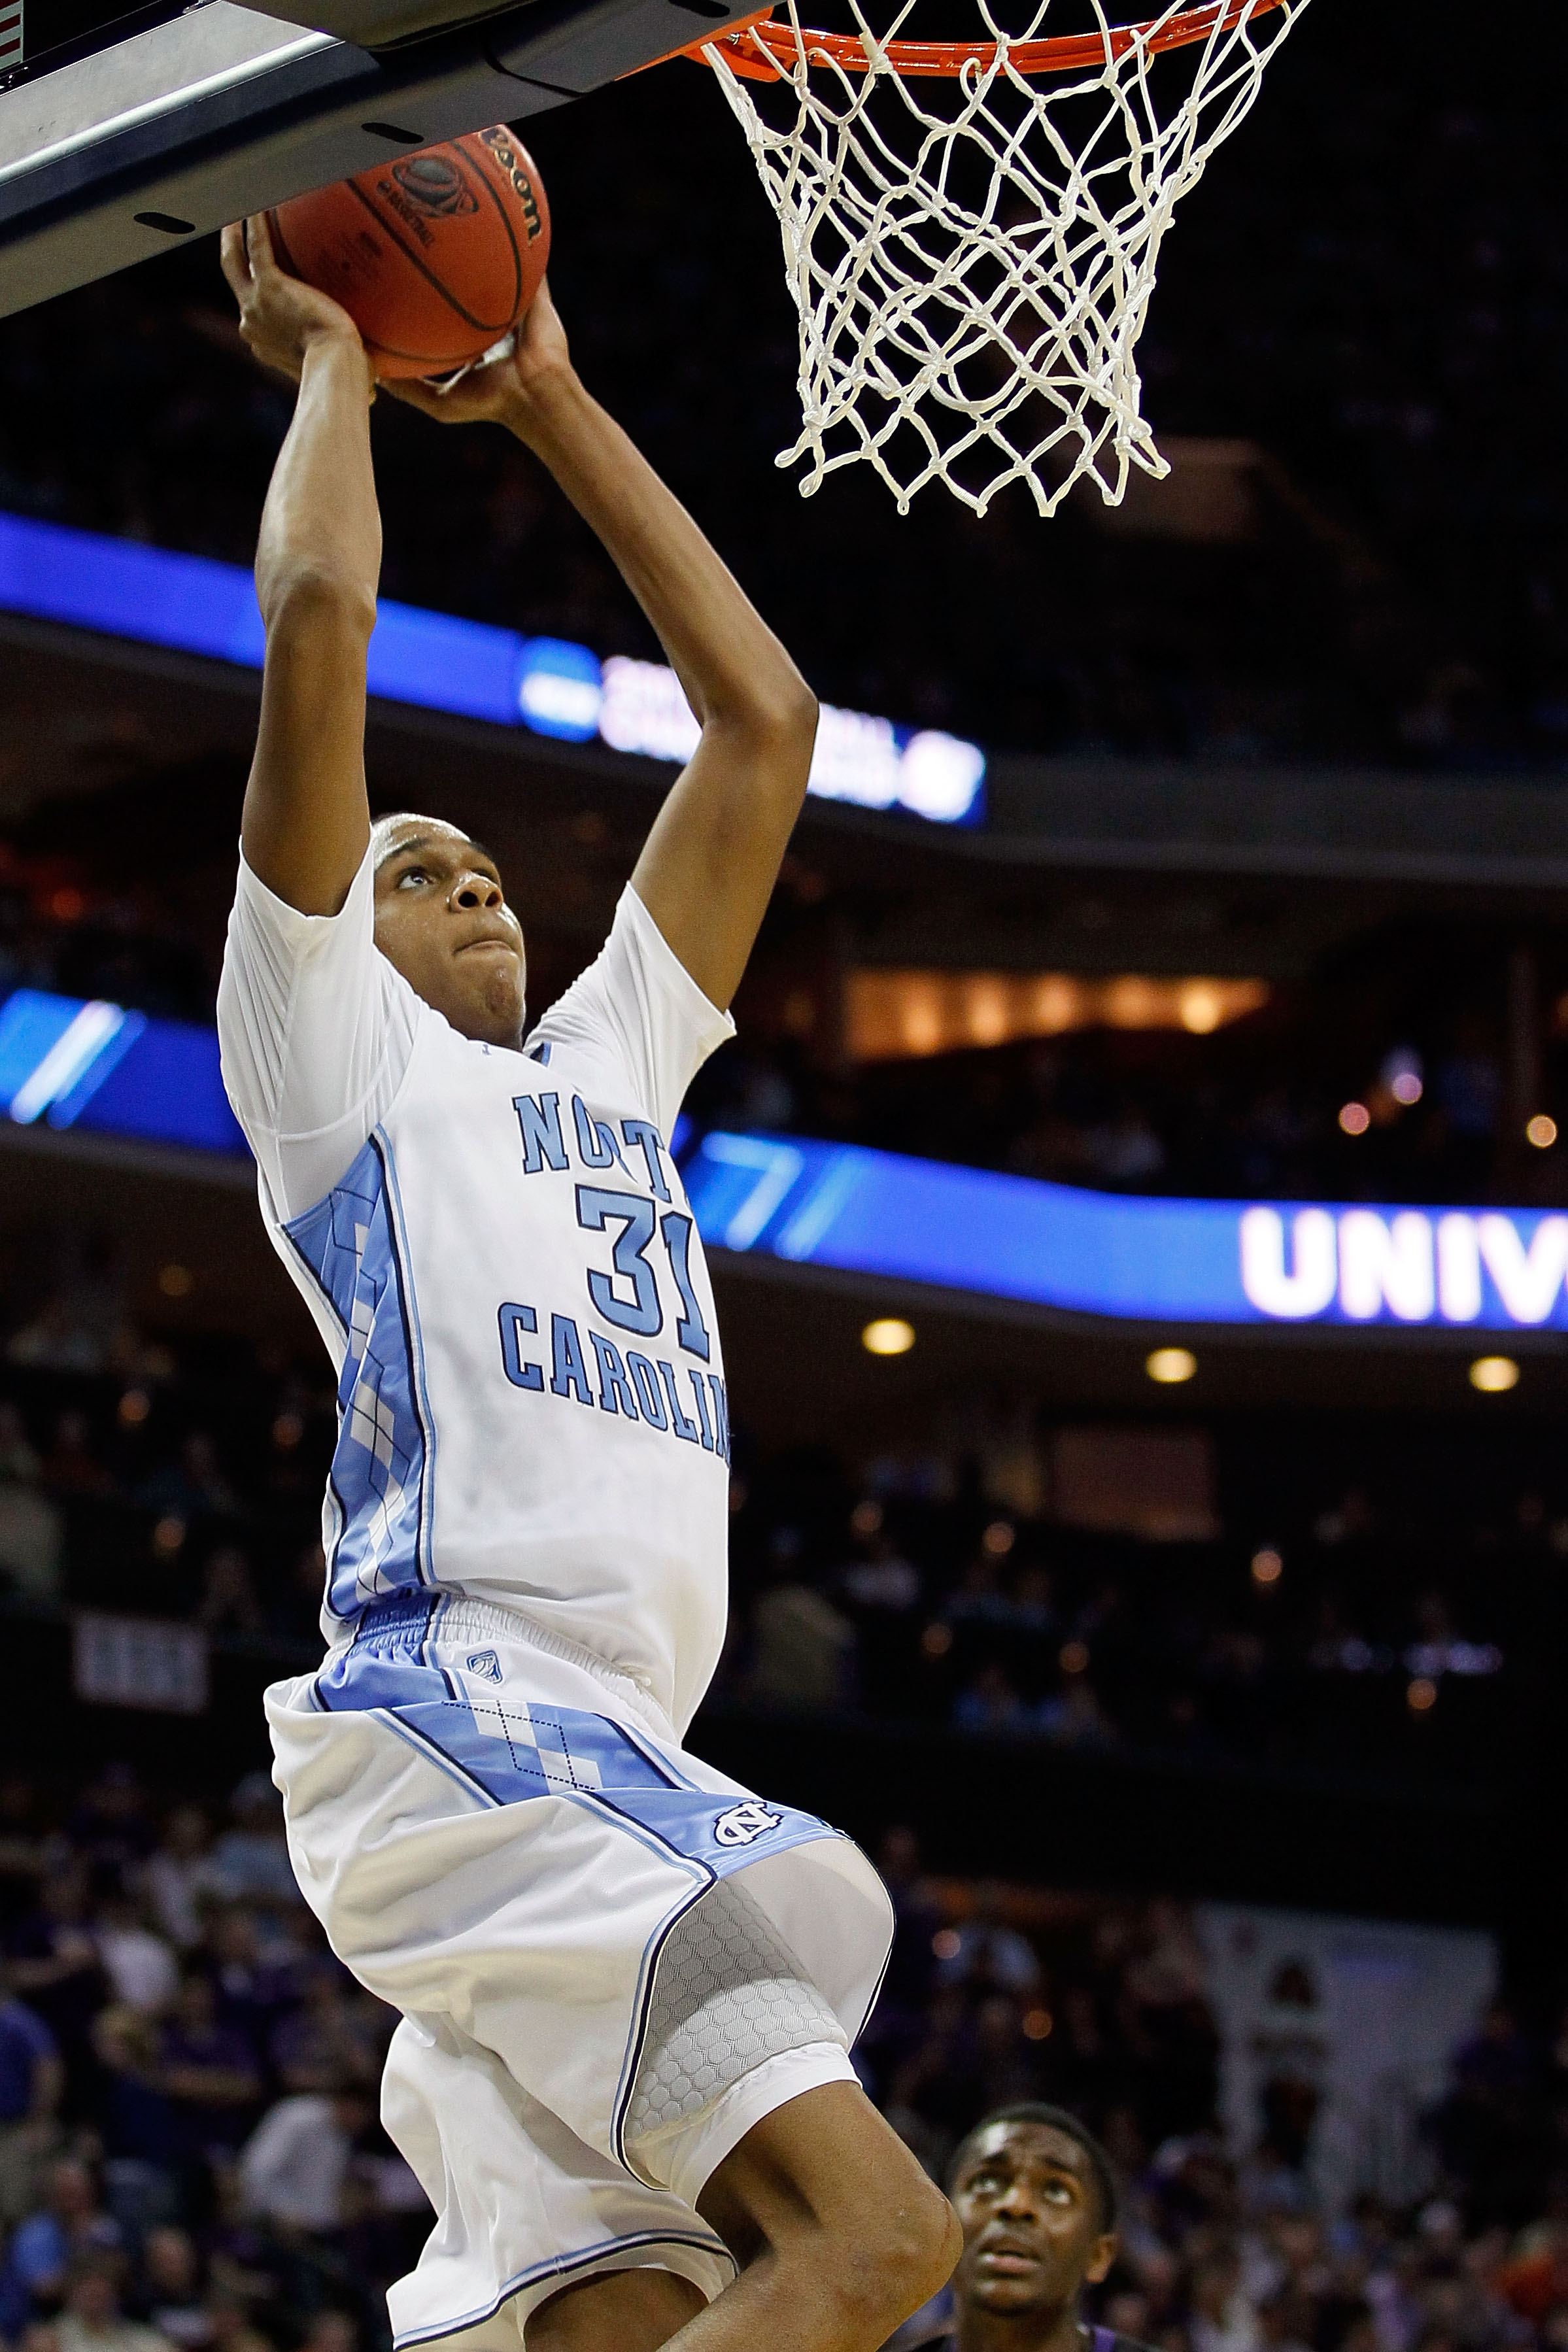 CHARLOTTE, NC - MARCH 20:  John Henson #31 of the North Carolina Tar Heels goes up to dunk the ball while taking on the Michigan Wolverines during the third round of the 2011 NCAA men's basketball tournament at Time Warner Cable Arena on March 20, 2011 in